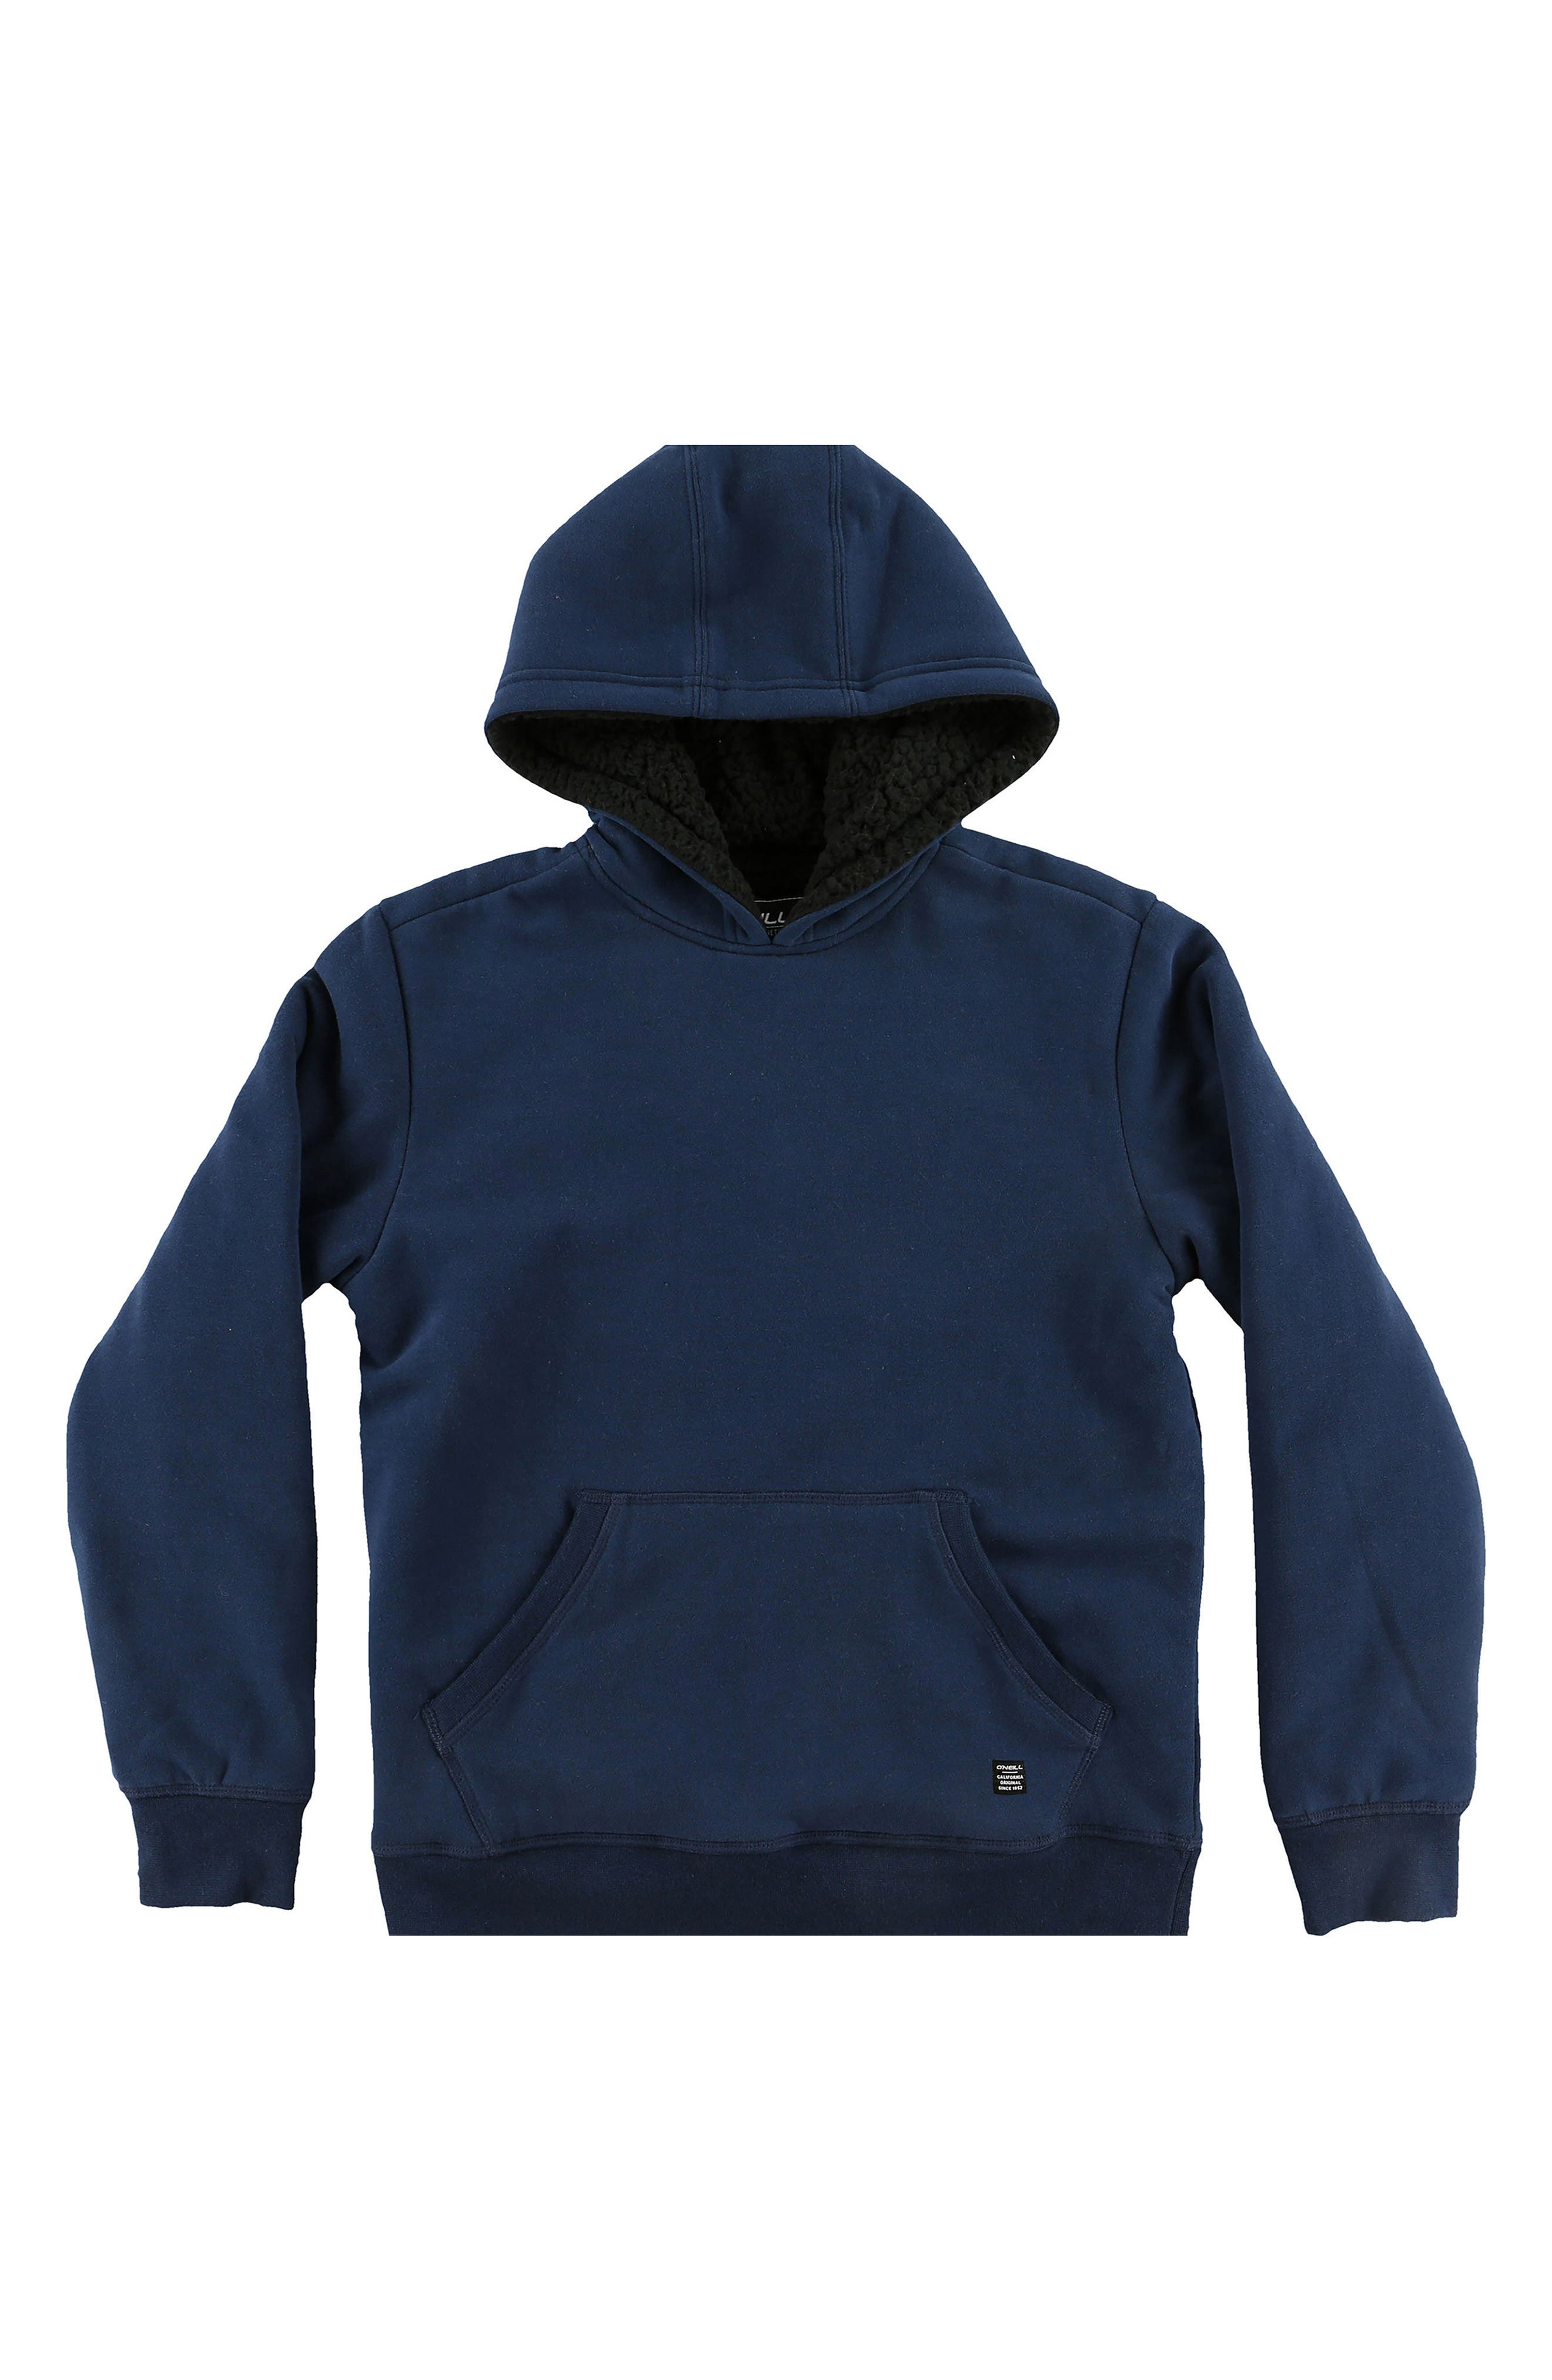 Staple Plush Lined Pullover Hoodie,                             Alternate thumbnail 2, color,                             410